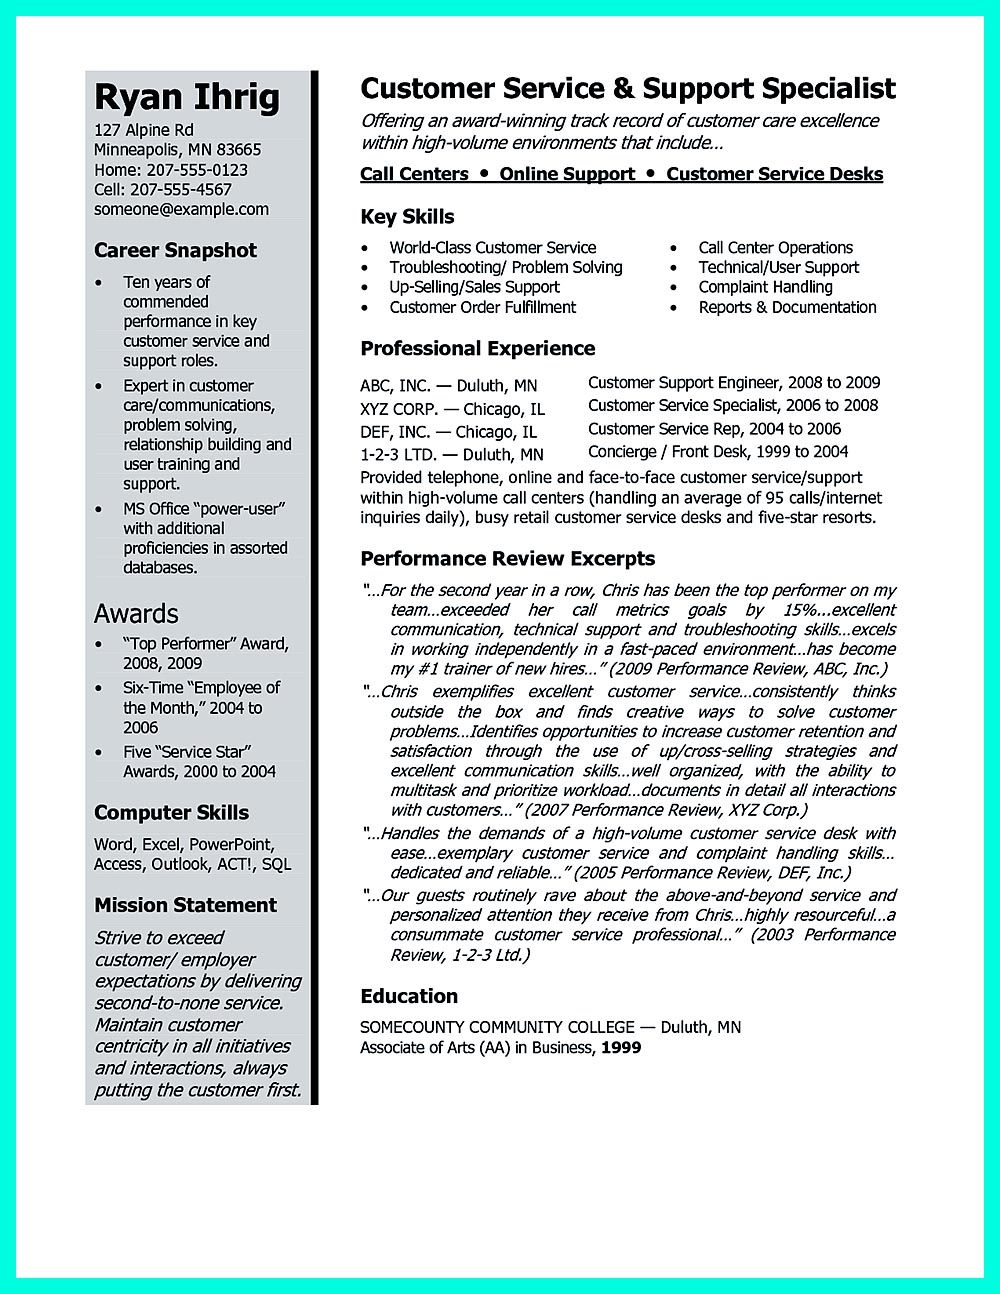 Well Written Csr Resume To Get Applied Soon Resume Objective Resume Examples Resume